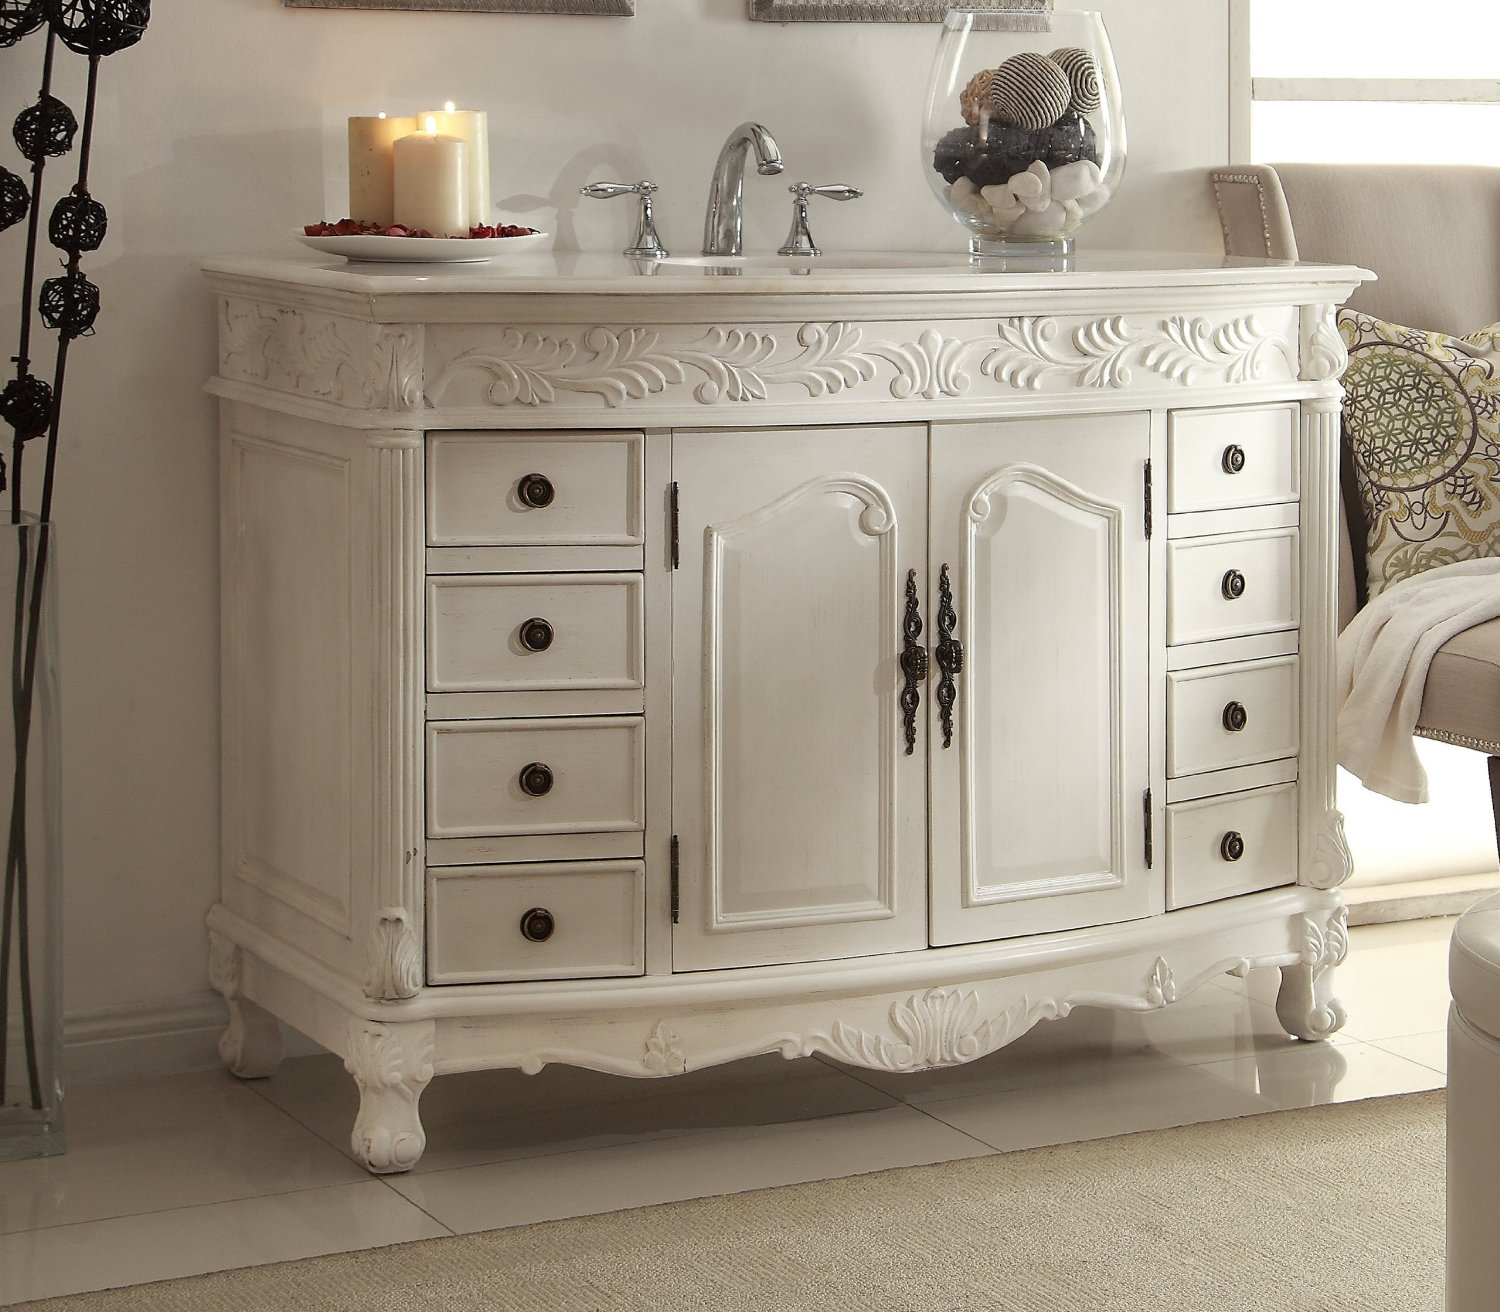 ... Adelina 48 inch Antique White Bathroom Vanity - Adelina 48 Inch Antique White Bathroom Vanity White Marble Top